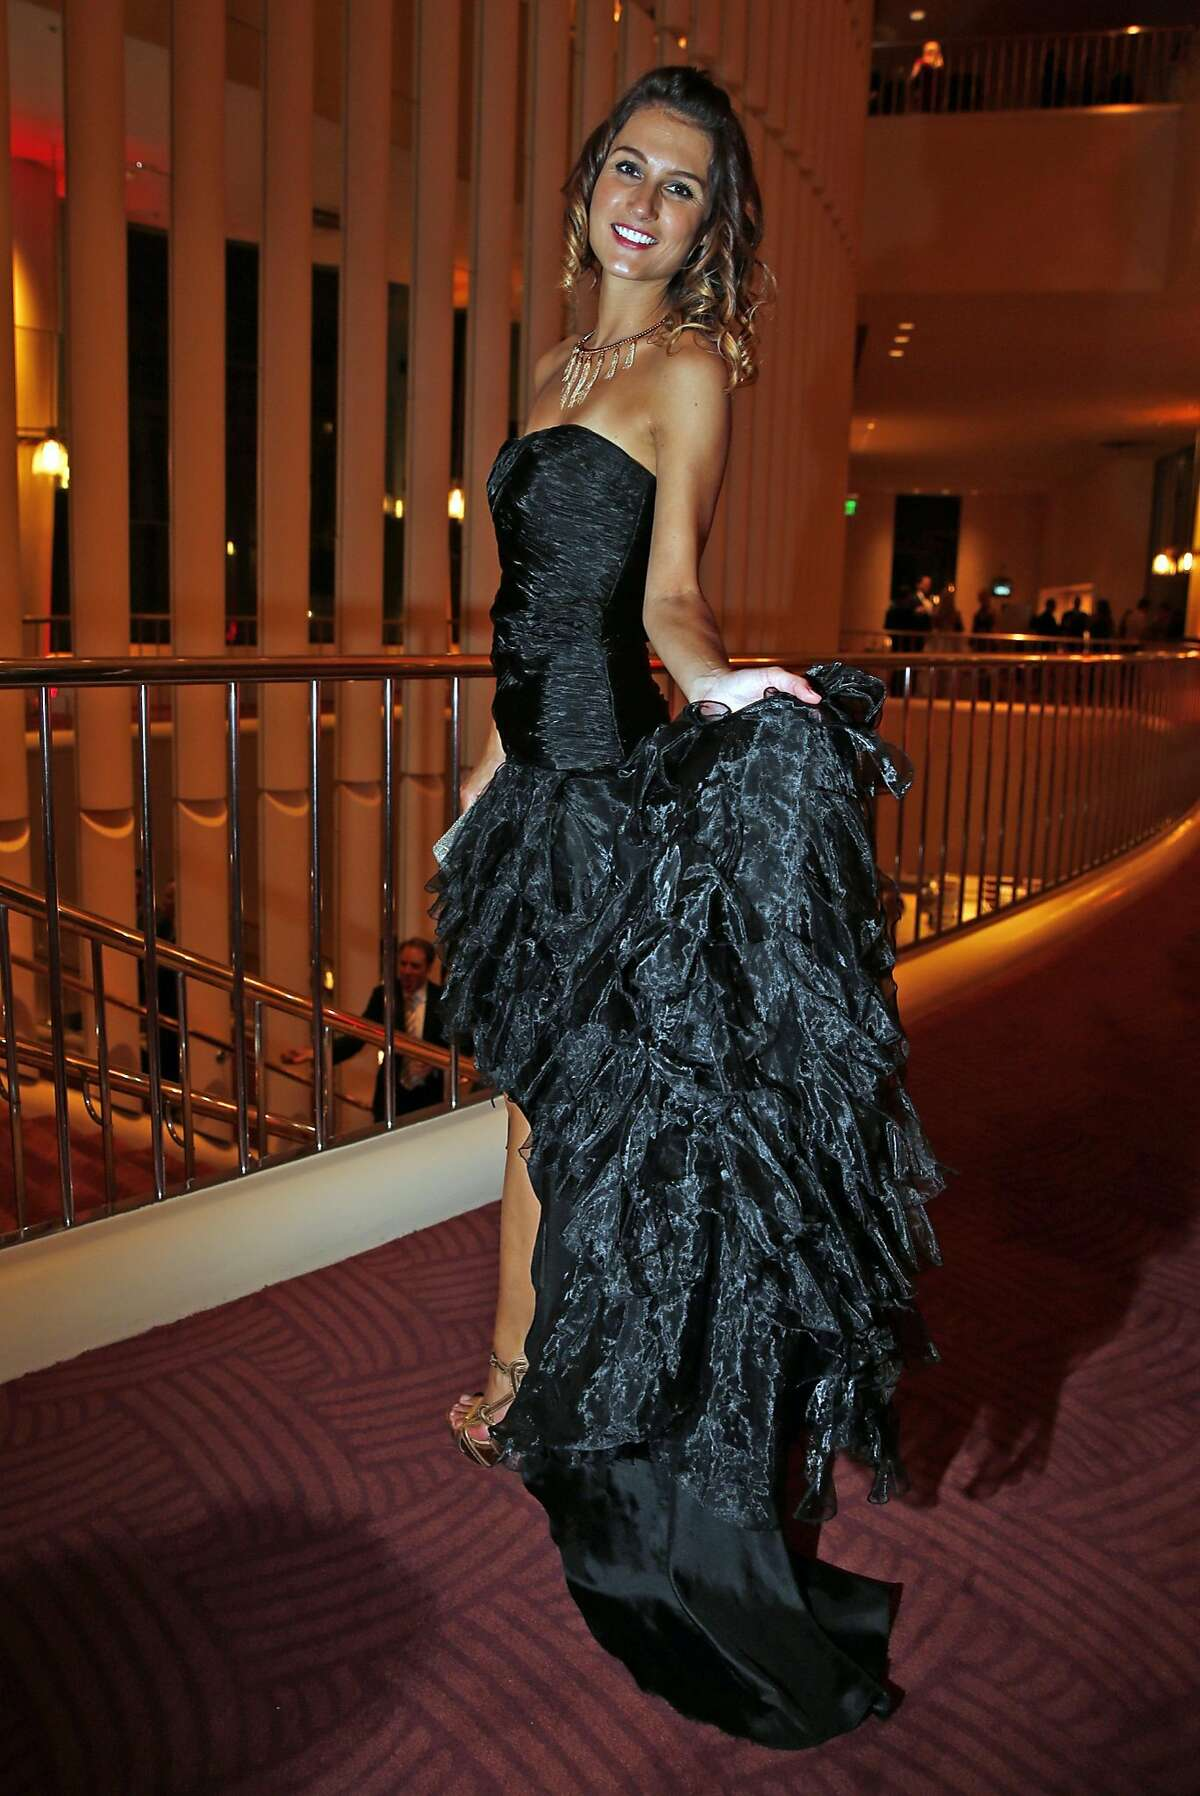 Virginie Eskenazi in a Giovanni dress with ruffles during San Francisco Symphony Opening Night Gala in San Francisco, Calif., on Wednesday, September 7, 2016.